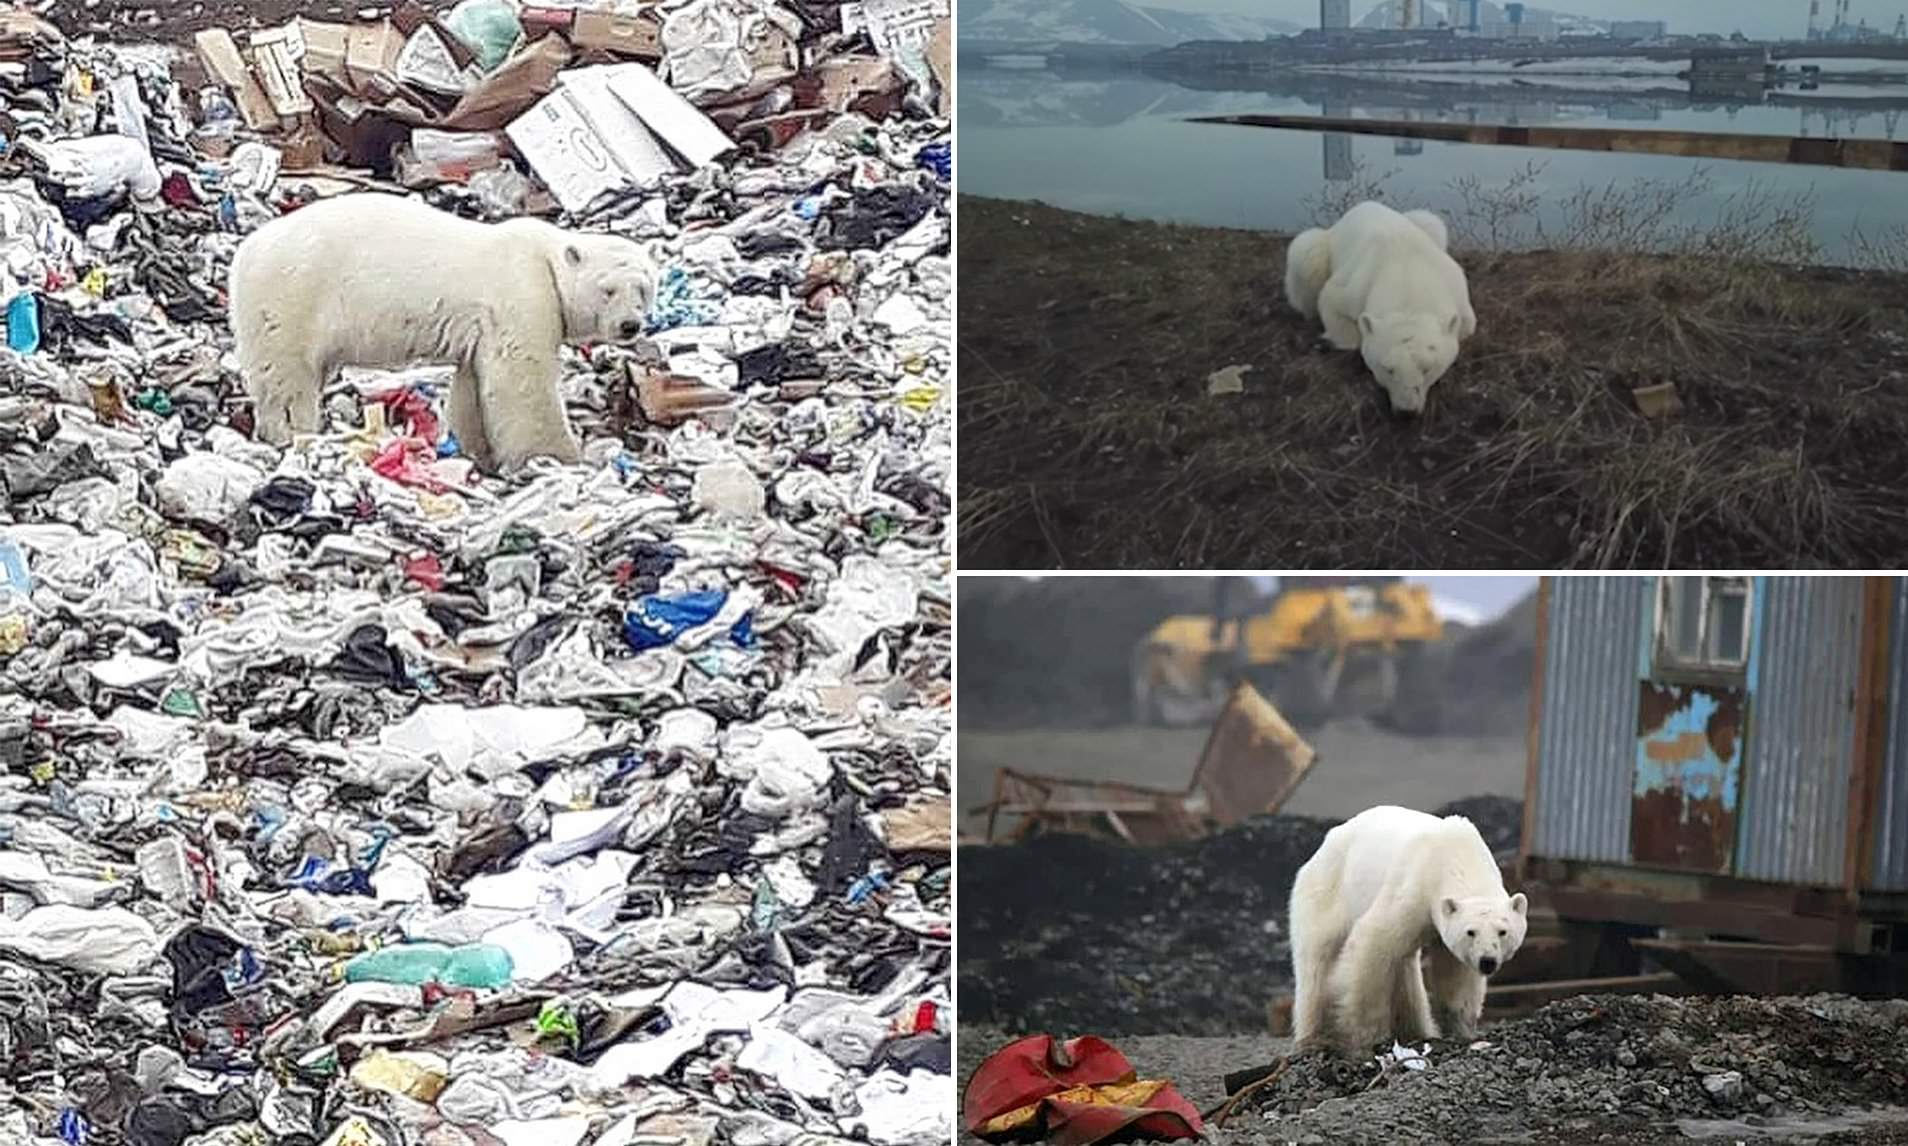 Lost Polar Bear Wanders Onto Garbage Pile After Straying 950